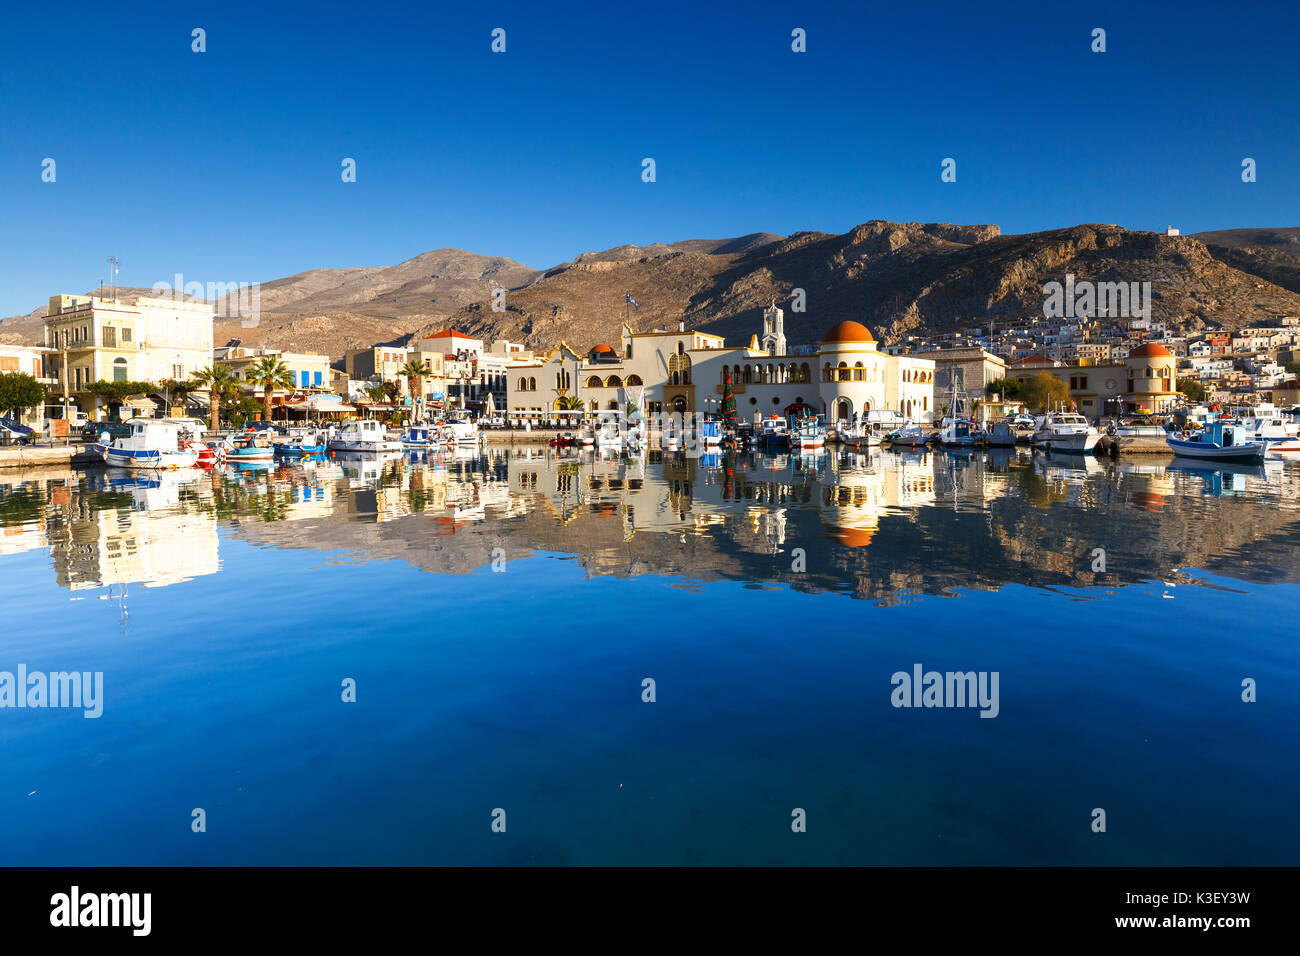 View of the Kalymnos town early in the morning, Greece. - Stock Image